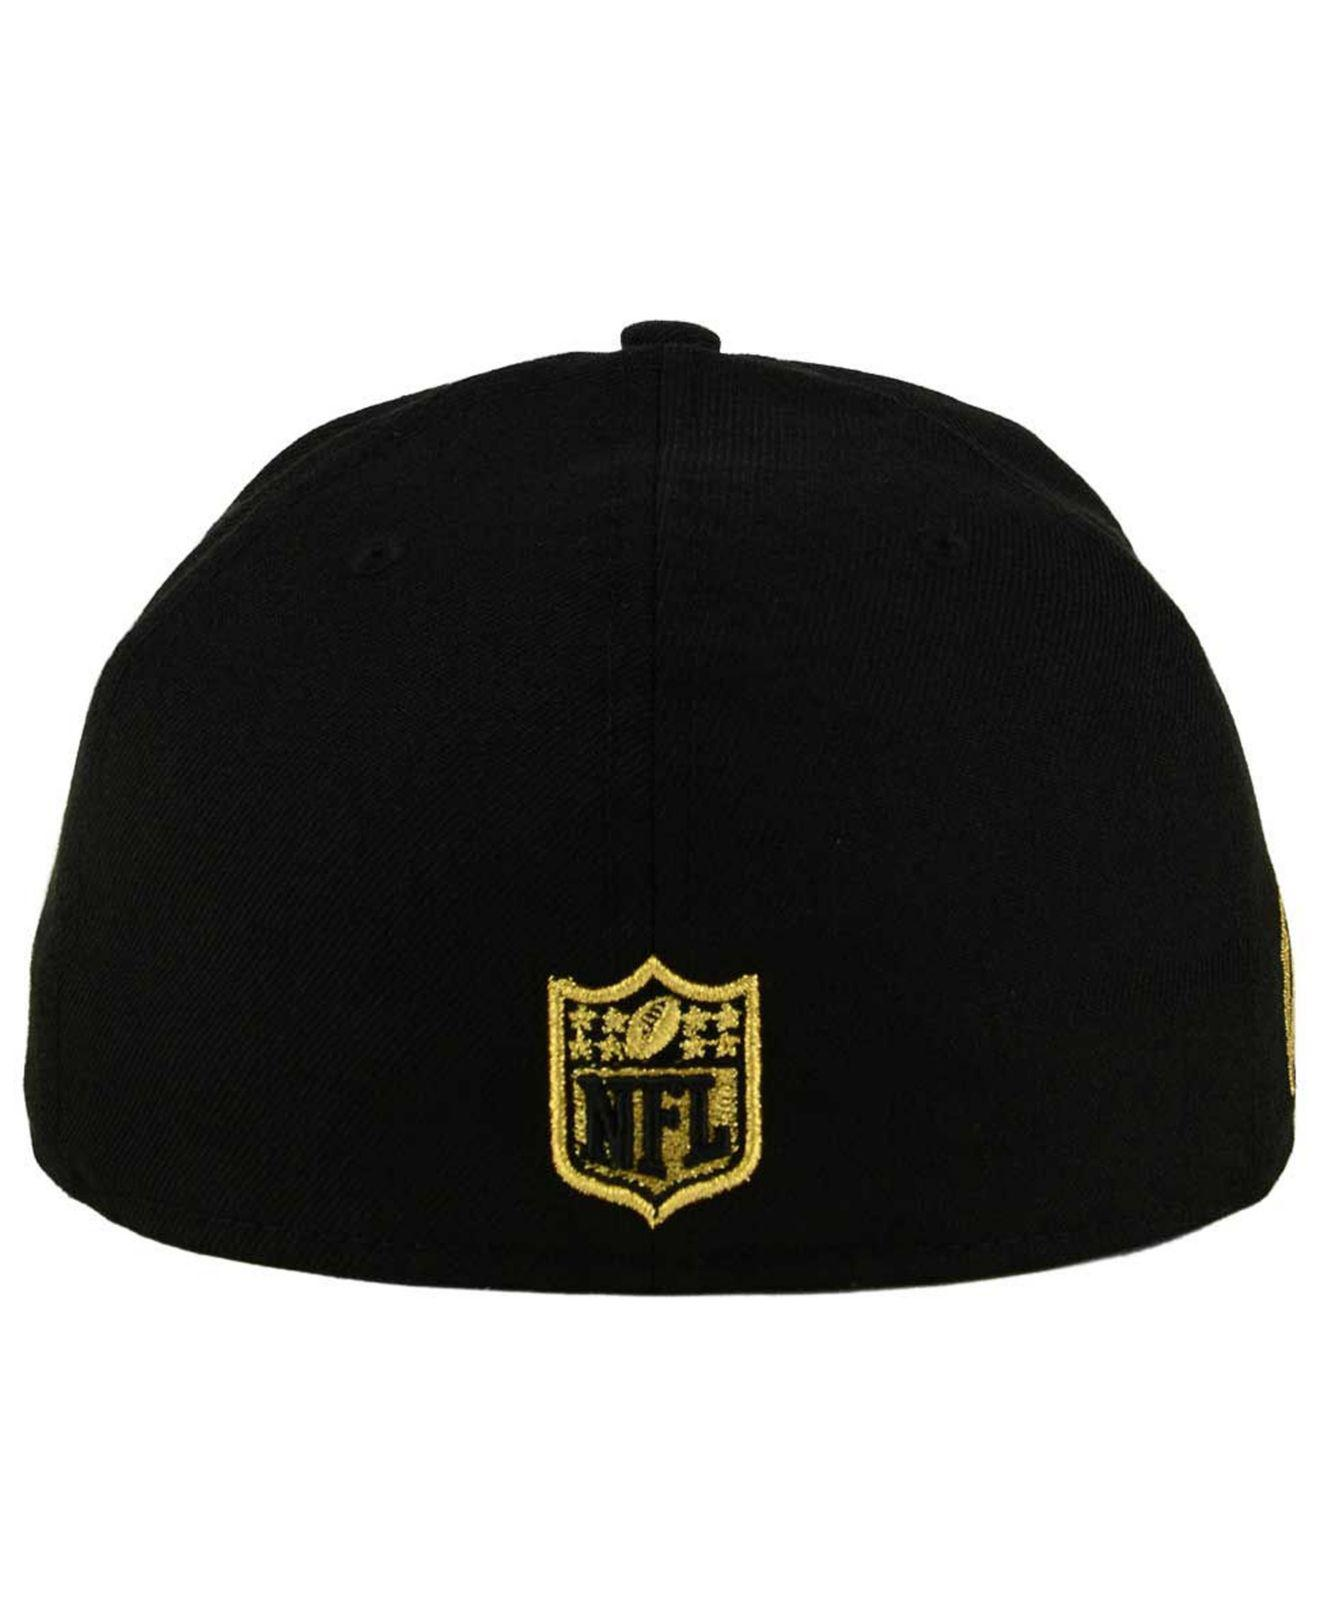 competitive price b25aa 52d28 ... coupon code lyst ktz state flective metallic 59fifty fitted cap in black  for men c986c af31c